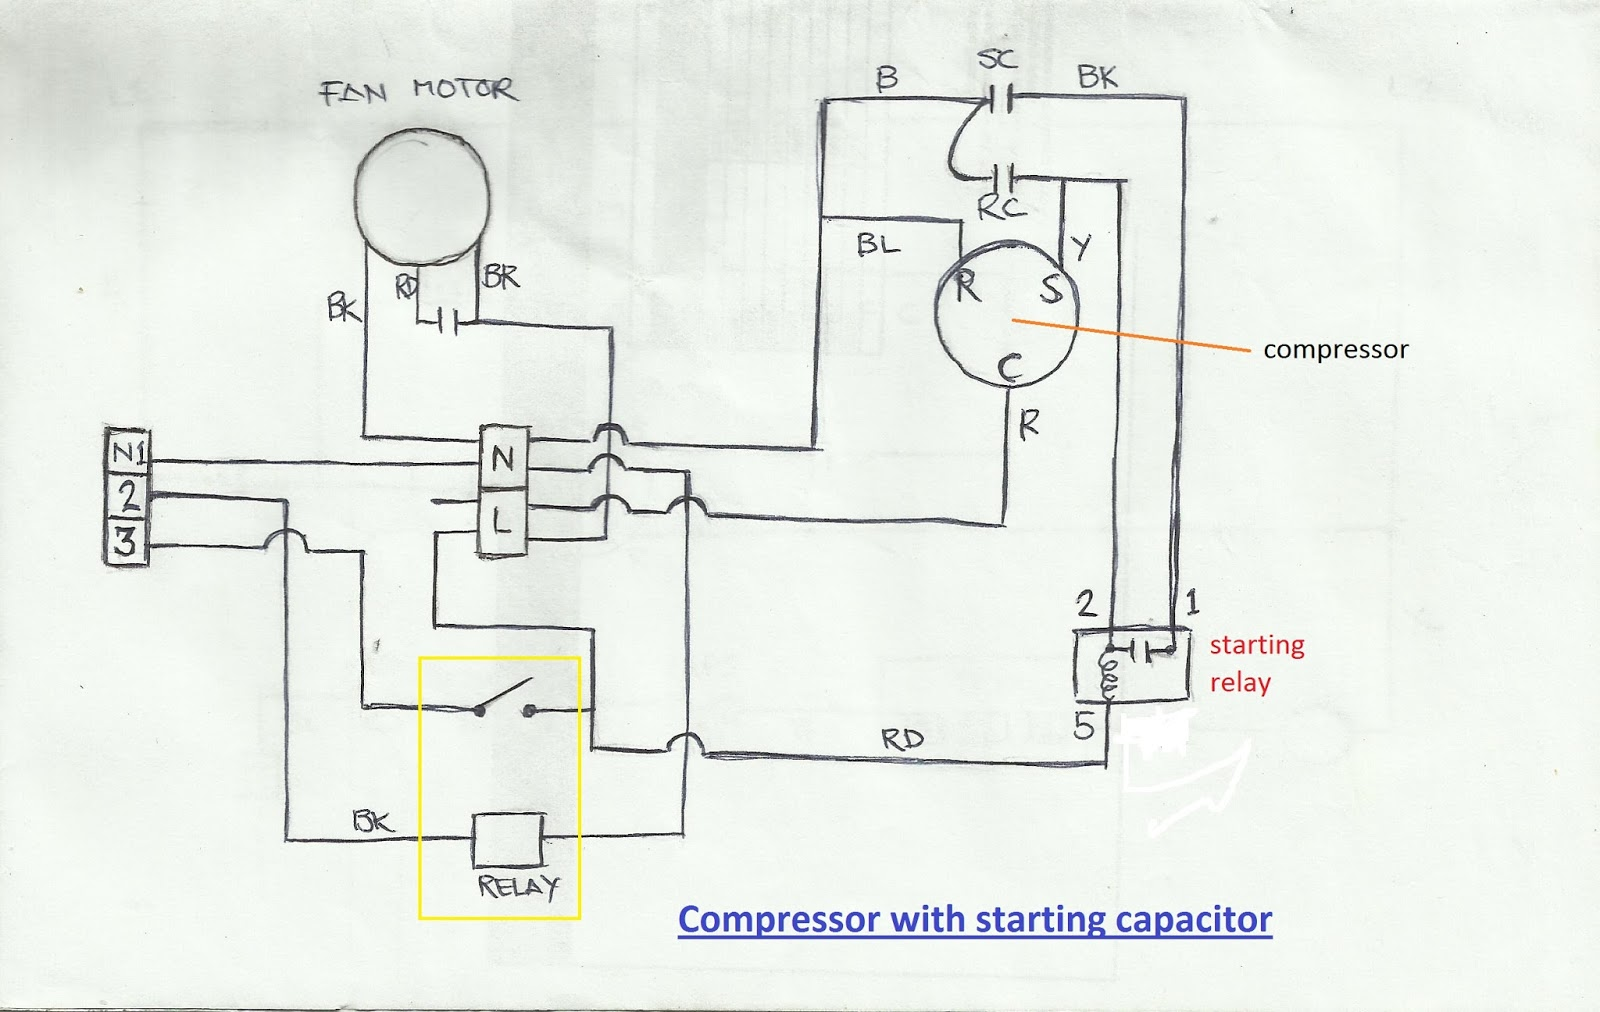 Kirby Compressor Wiring Diagram 31 Images Diagrams For Refrigerator Diy Refrigeration And Air Conditioning Repair Of